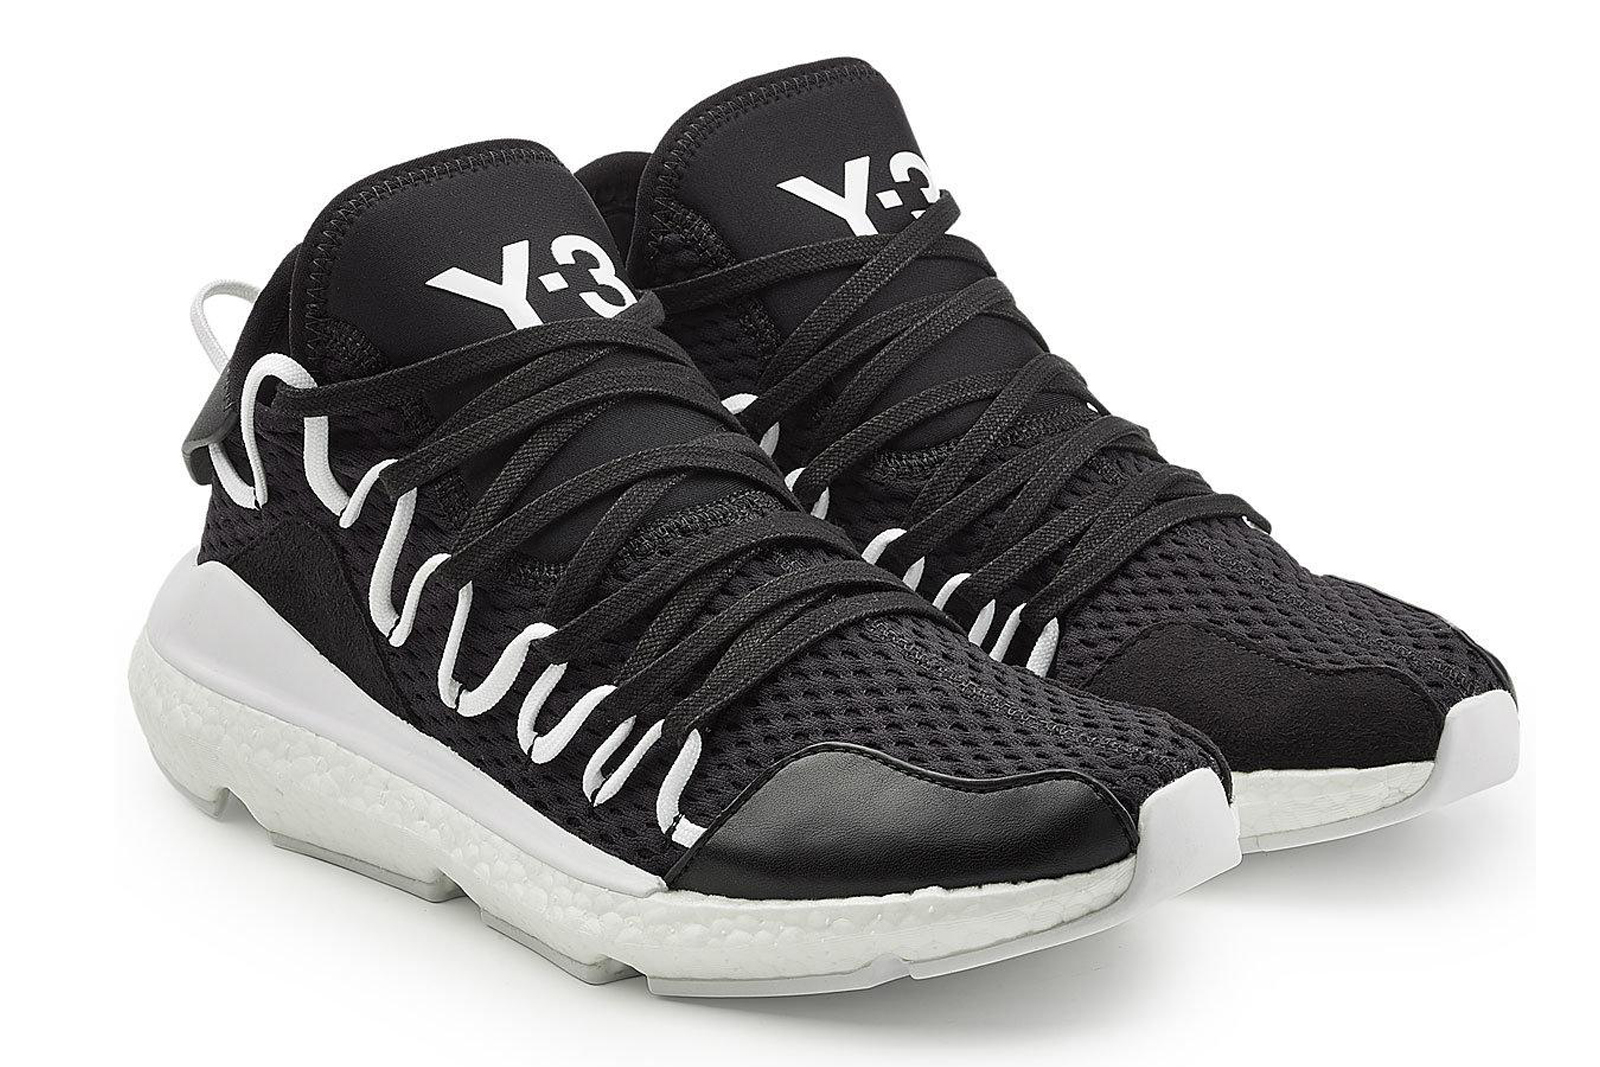 903c9c291 Y-3 Kusari   Saikou Sneakers Now in All Retail Stores – Boys Co